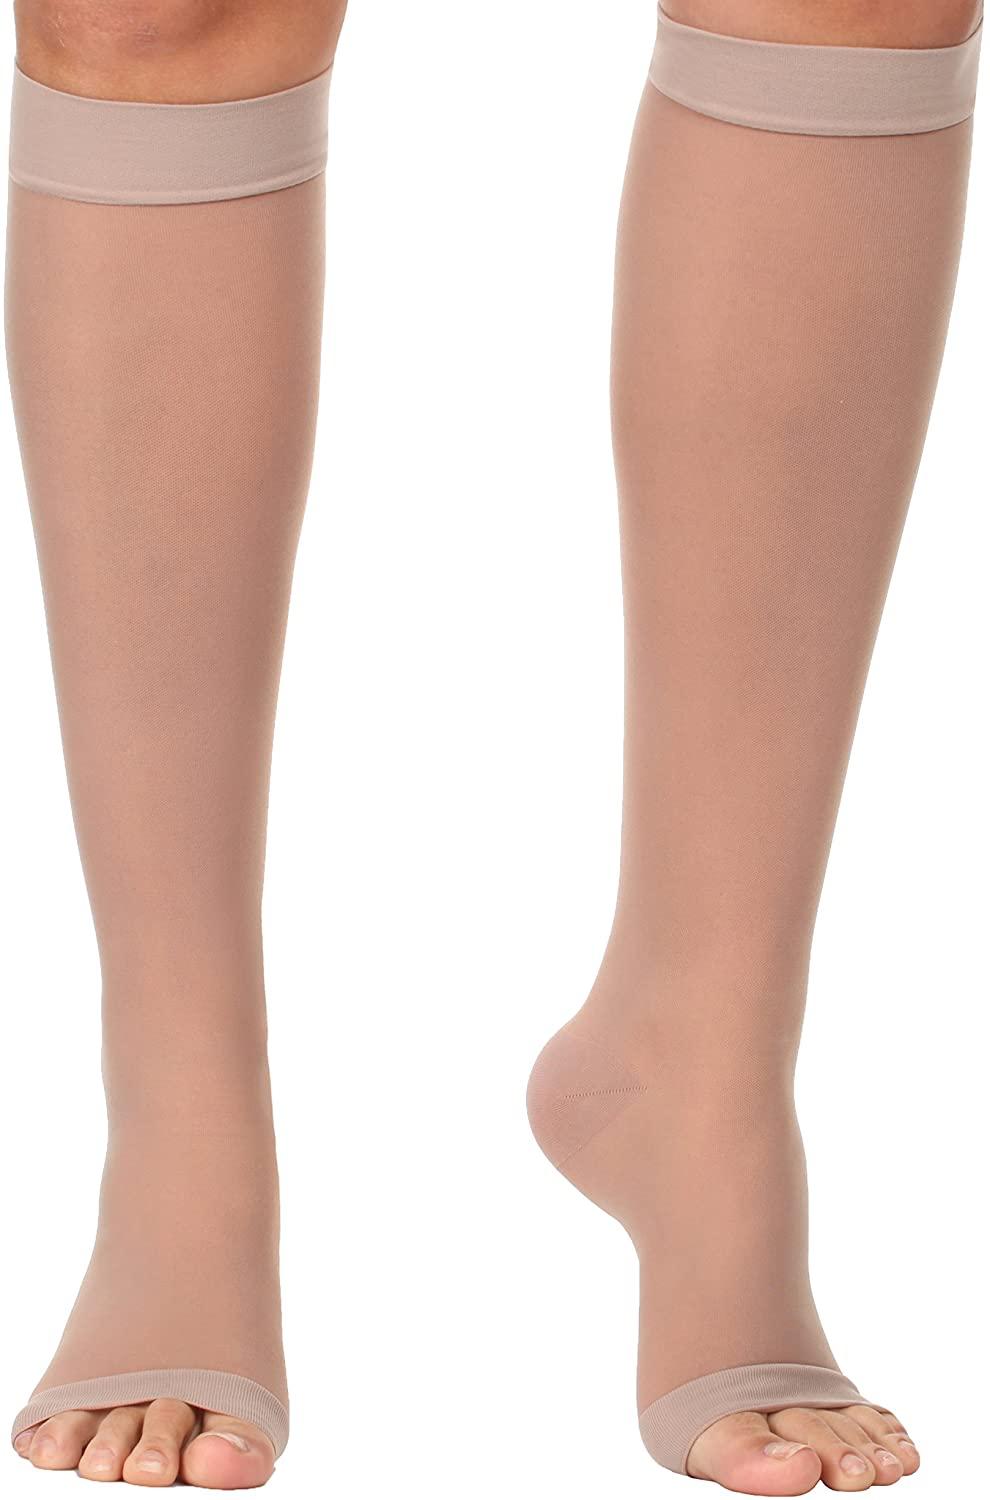 Sheer Open Toe Knee High Firm Support 20-30mmHg- Beige, Large – Made in USA